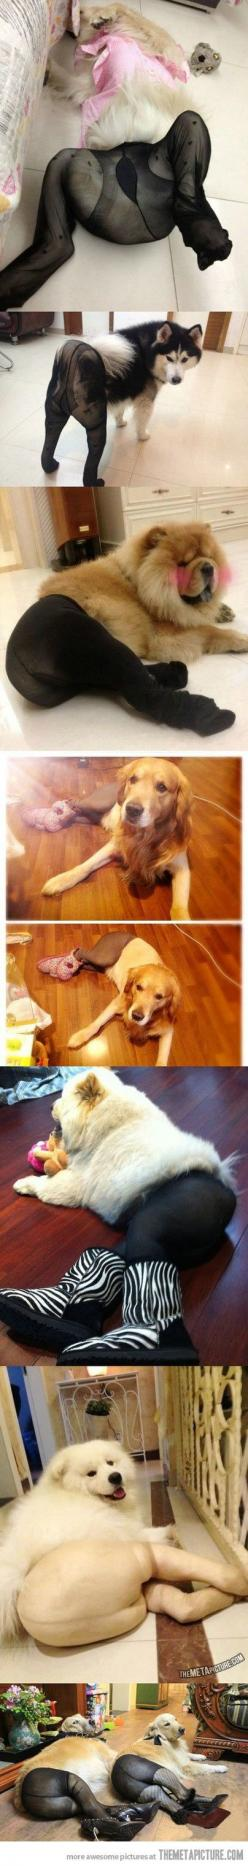 This made me laugh so hard!: Giggle, Cant, Thought, Poor Dogs, So Funny, Animal